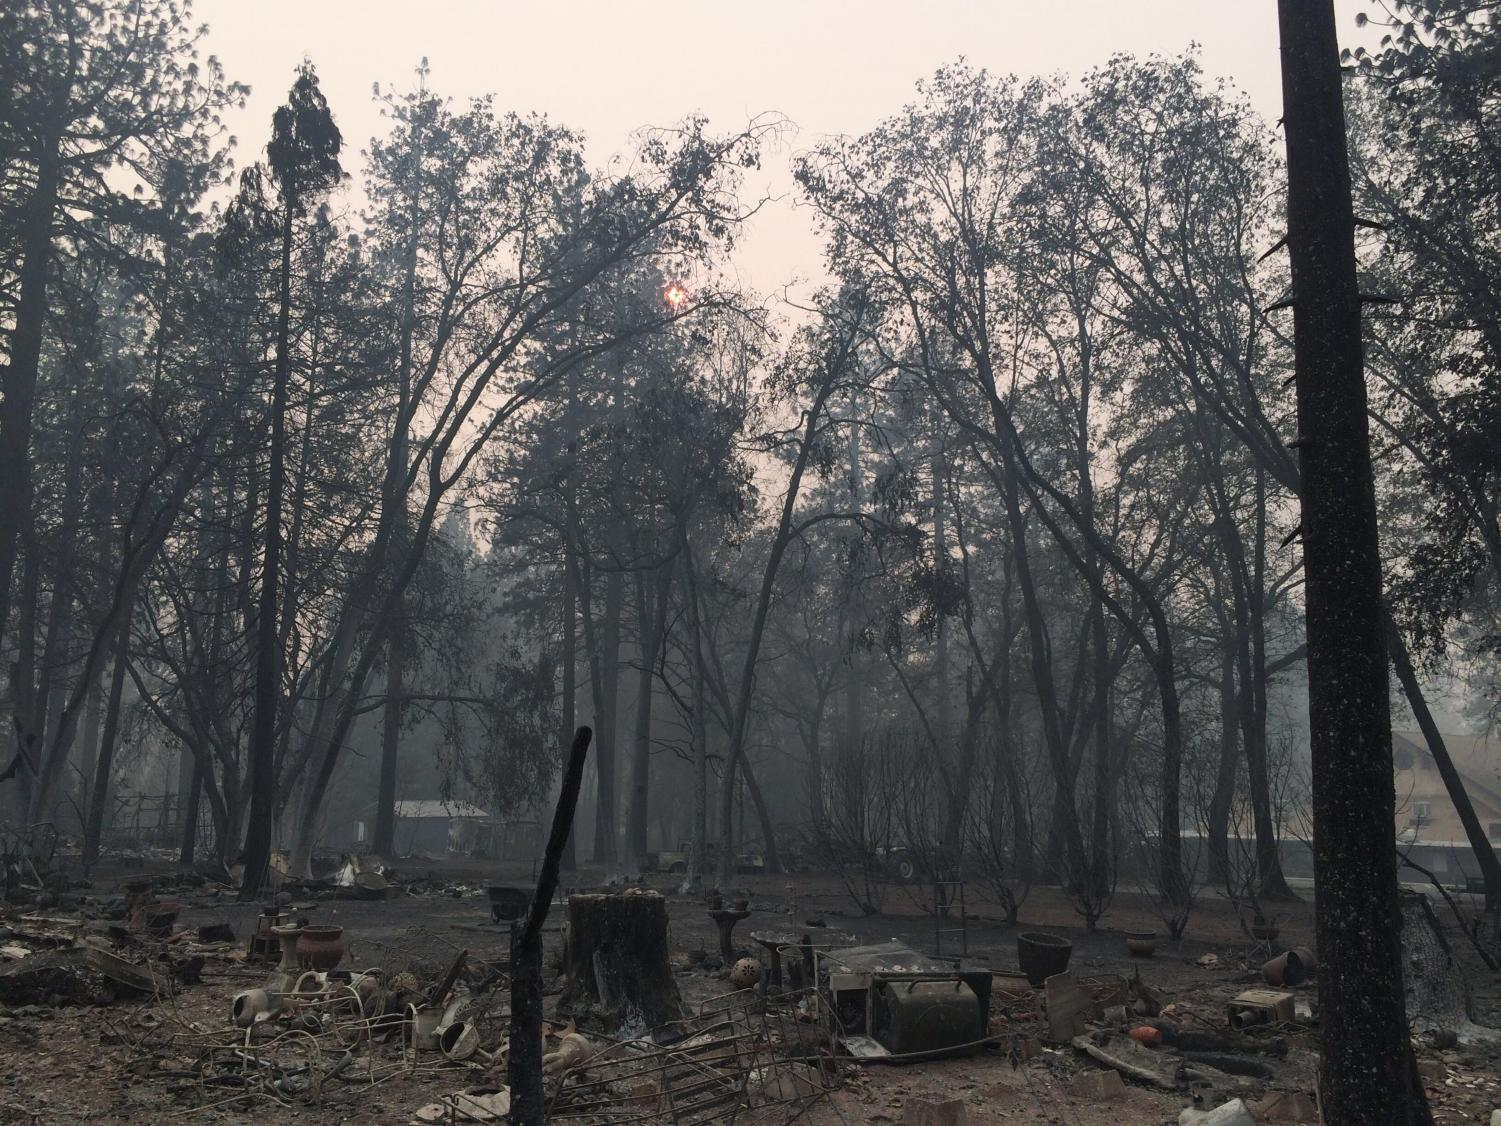 This photo was taken of a neighborhood in Paradise before the residents had returned to their homes.